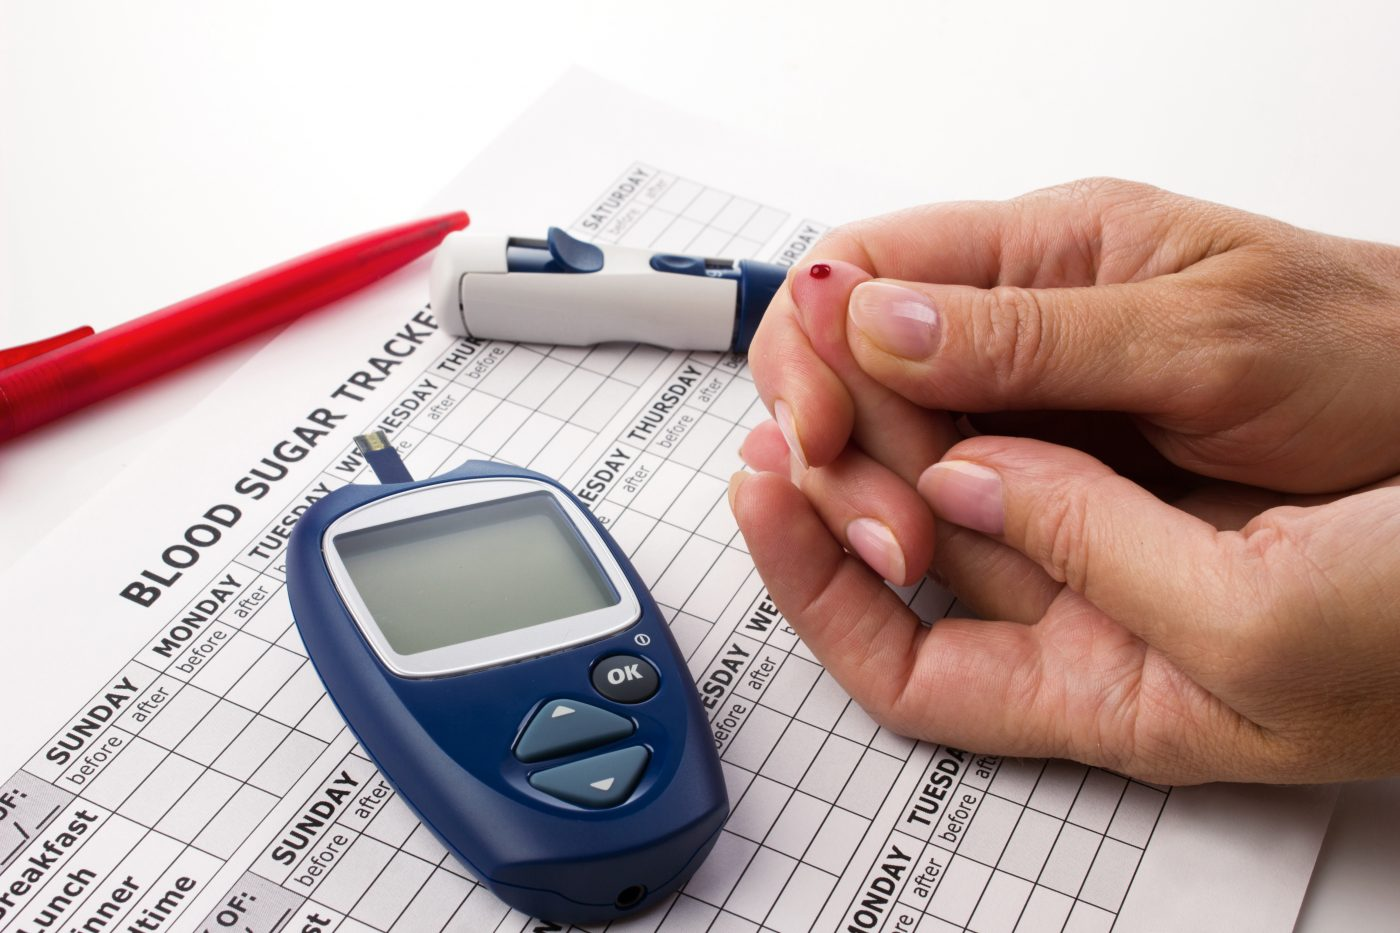 Study Shows That Smoking Cessation in Diabetes Patients is Linked to Temporarily Poorer Diabetes Control